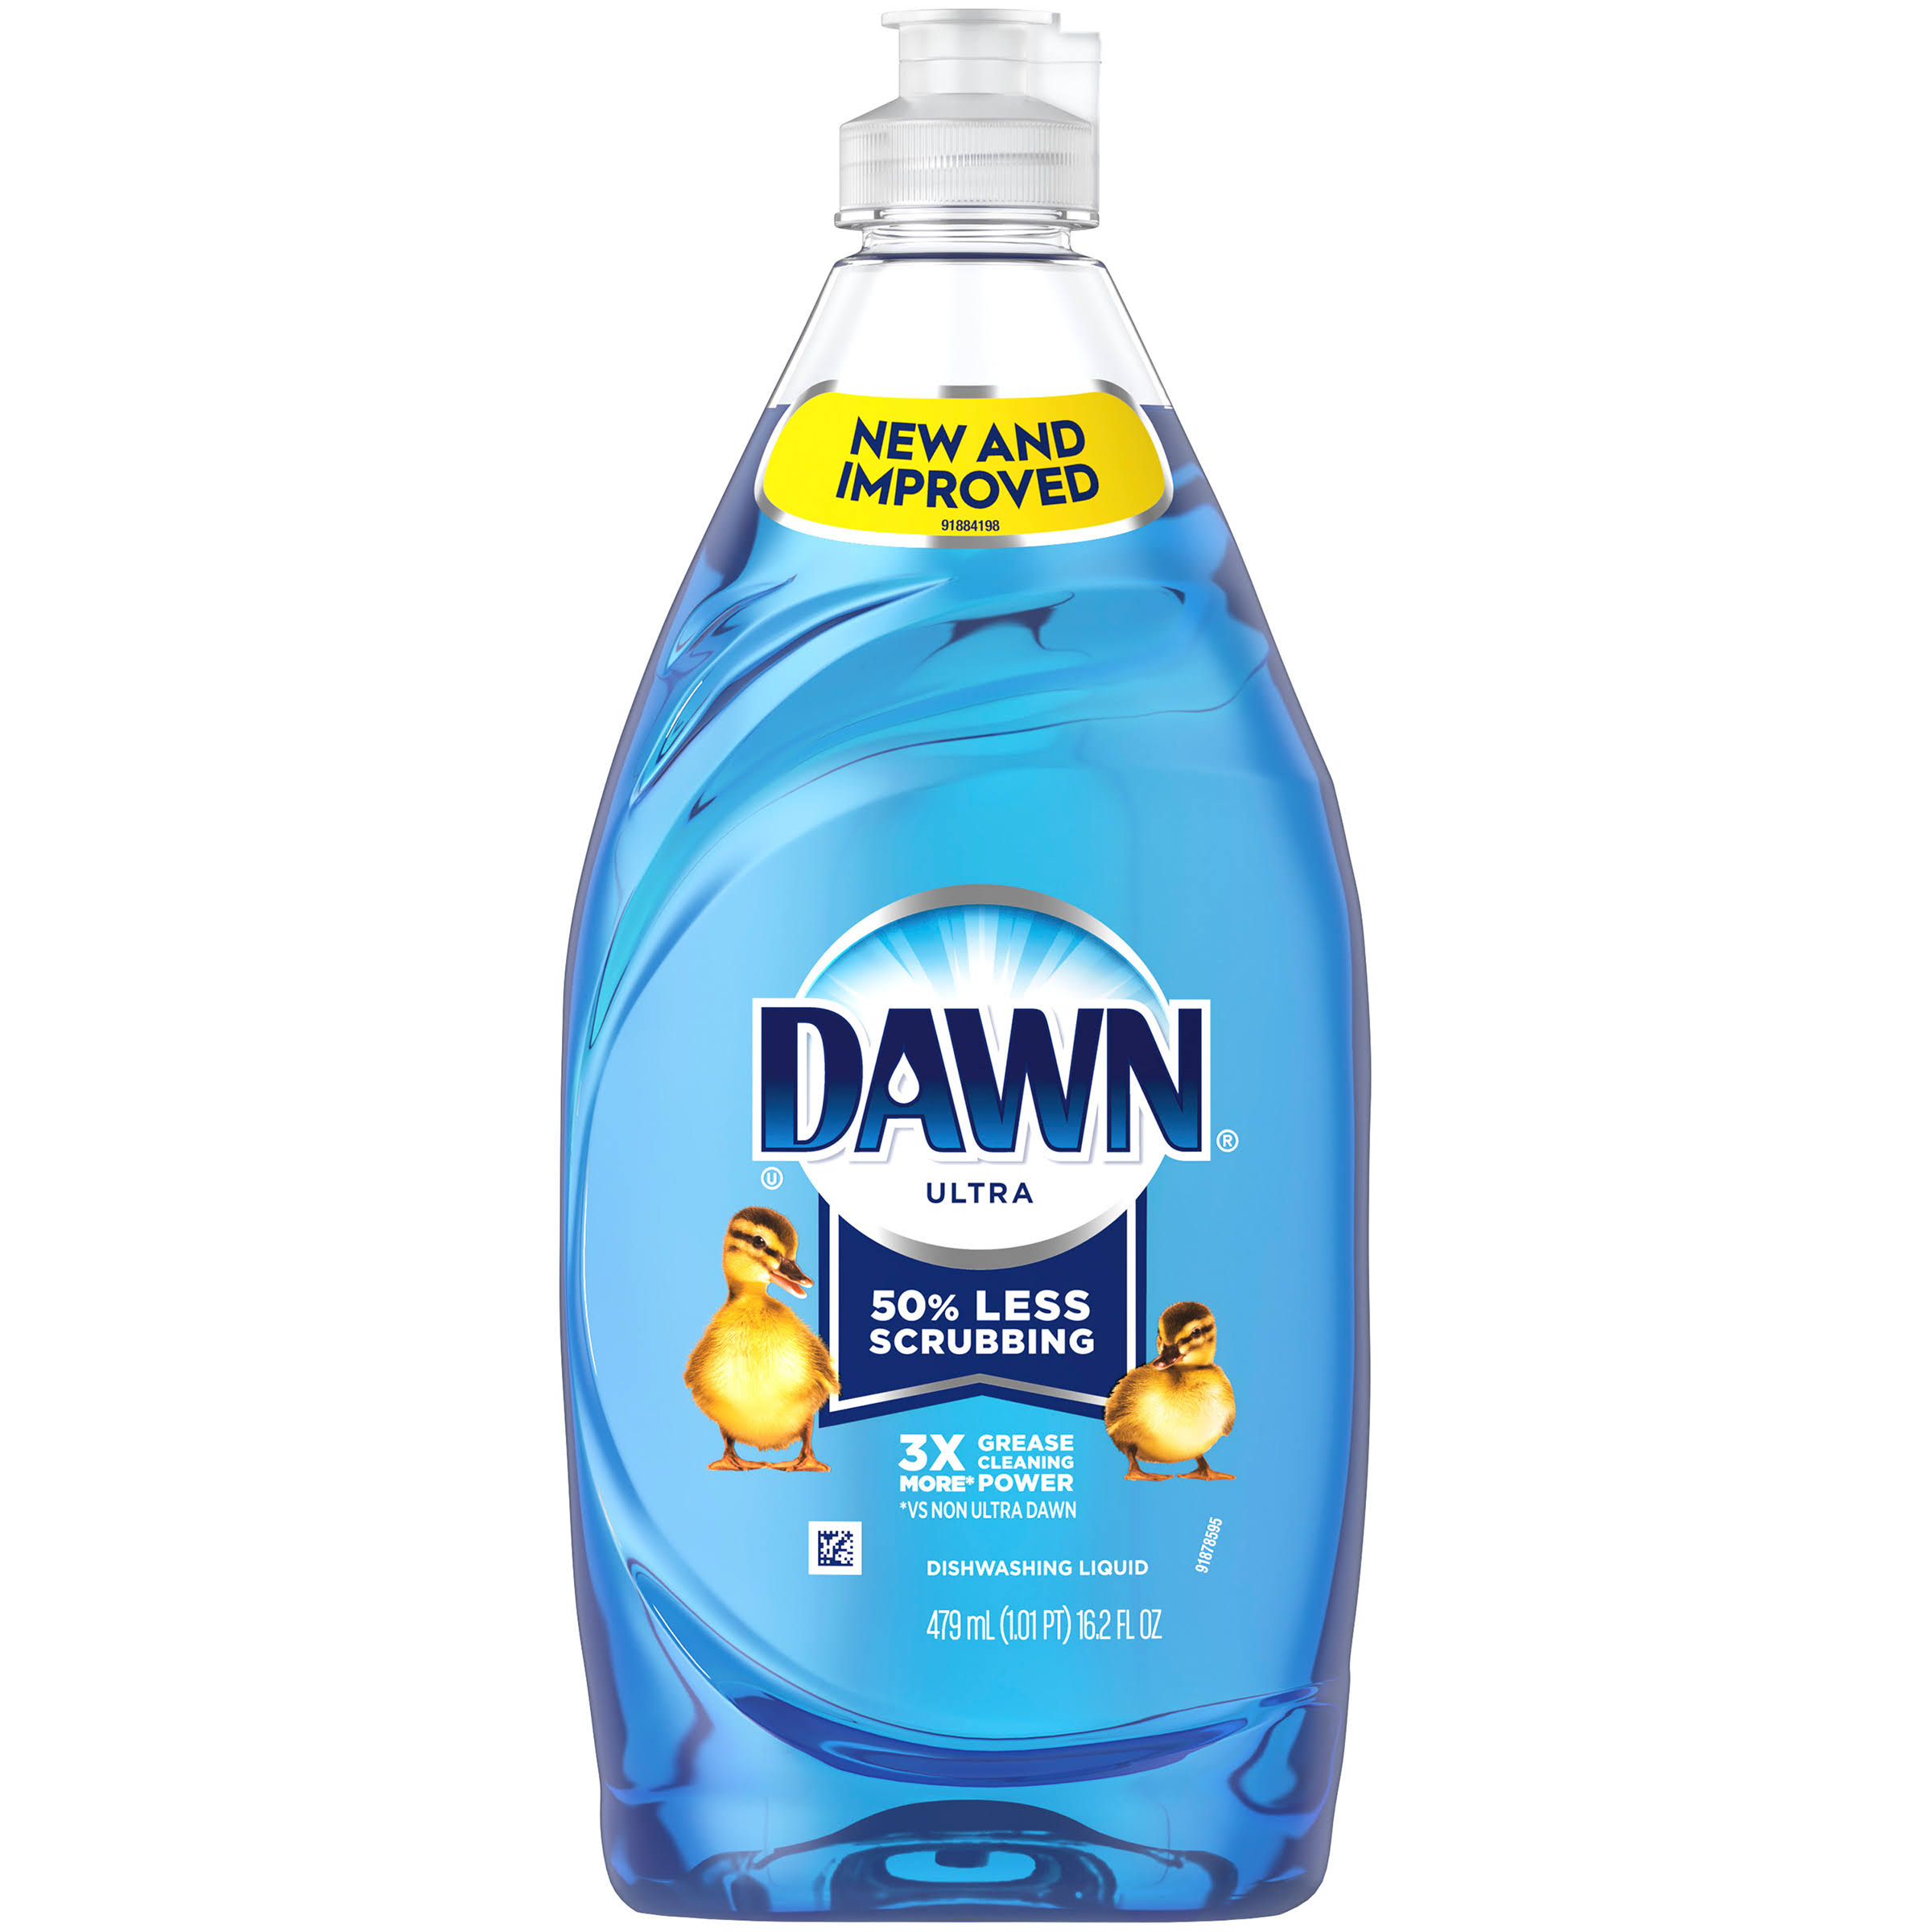 Dawn Ultra Dishwashing Liquid, Original Scent - 16.2 fl oz